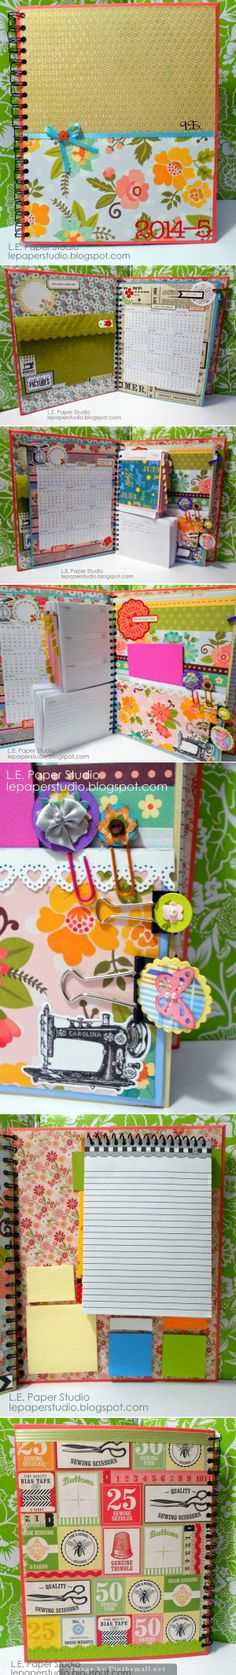 Make your own customized Filofax. DIY personalized planner mini album. Free printable inserts coming soon.